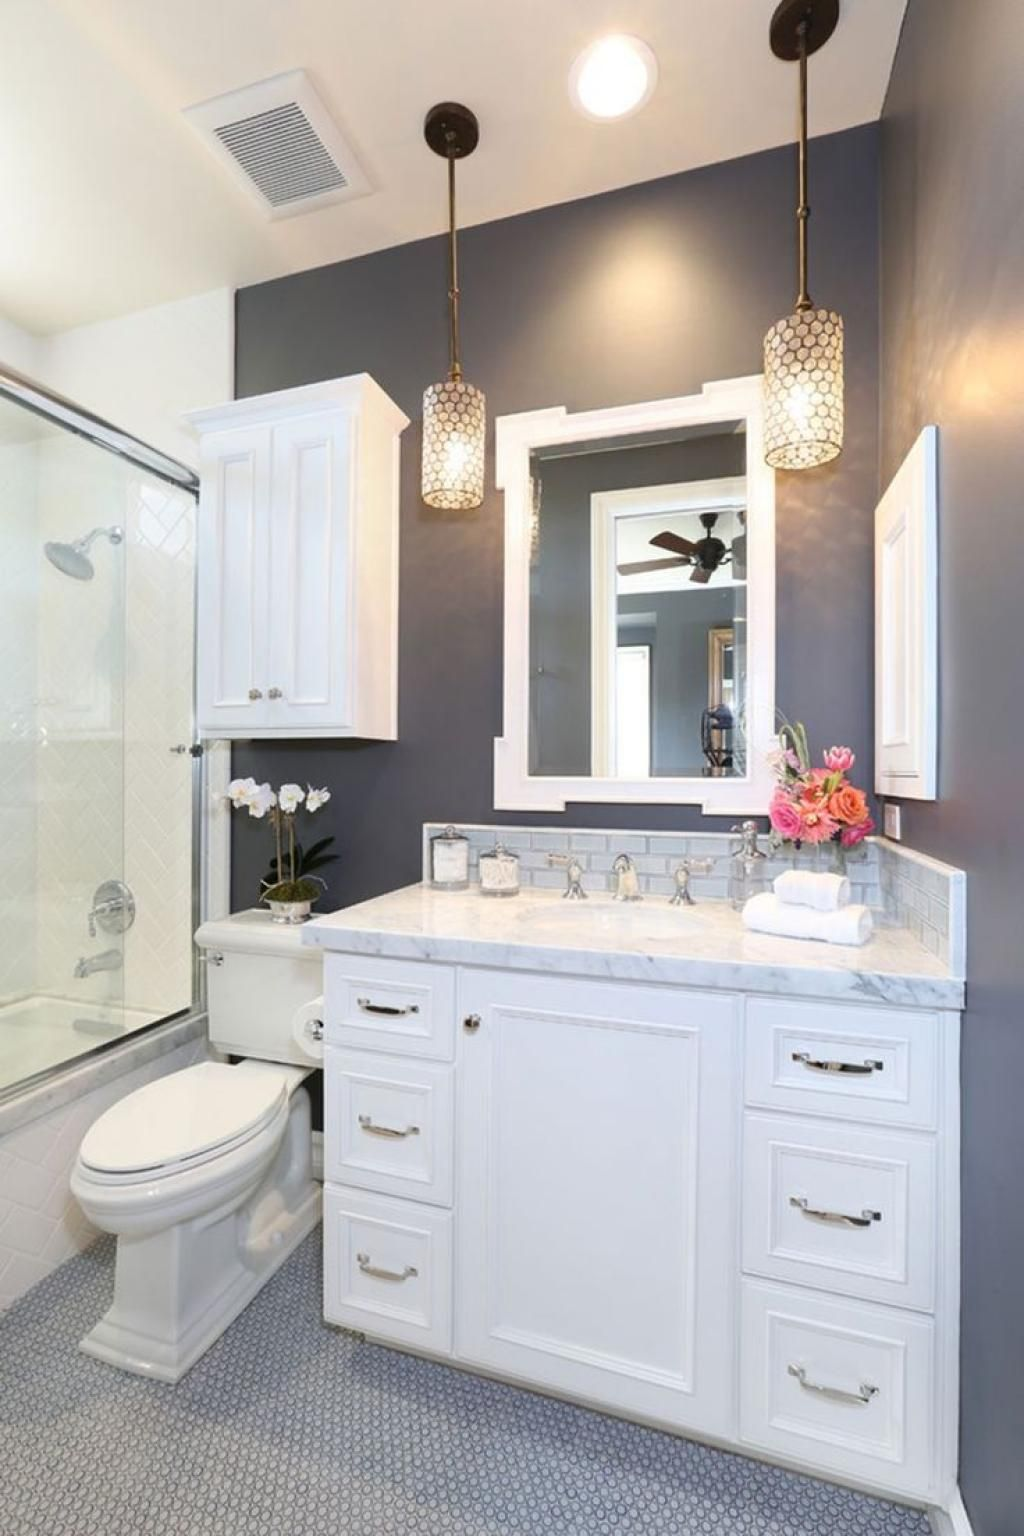 3 Easy Steps to Remodelling your Small Bathroom | BATHROOM ALL IDEAS ...